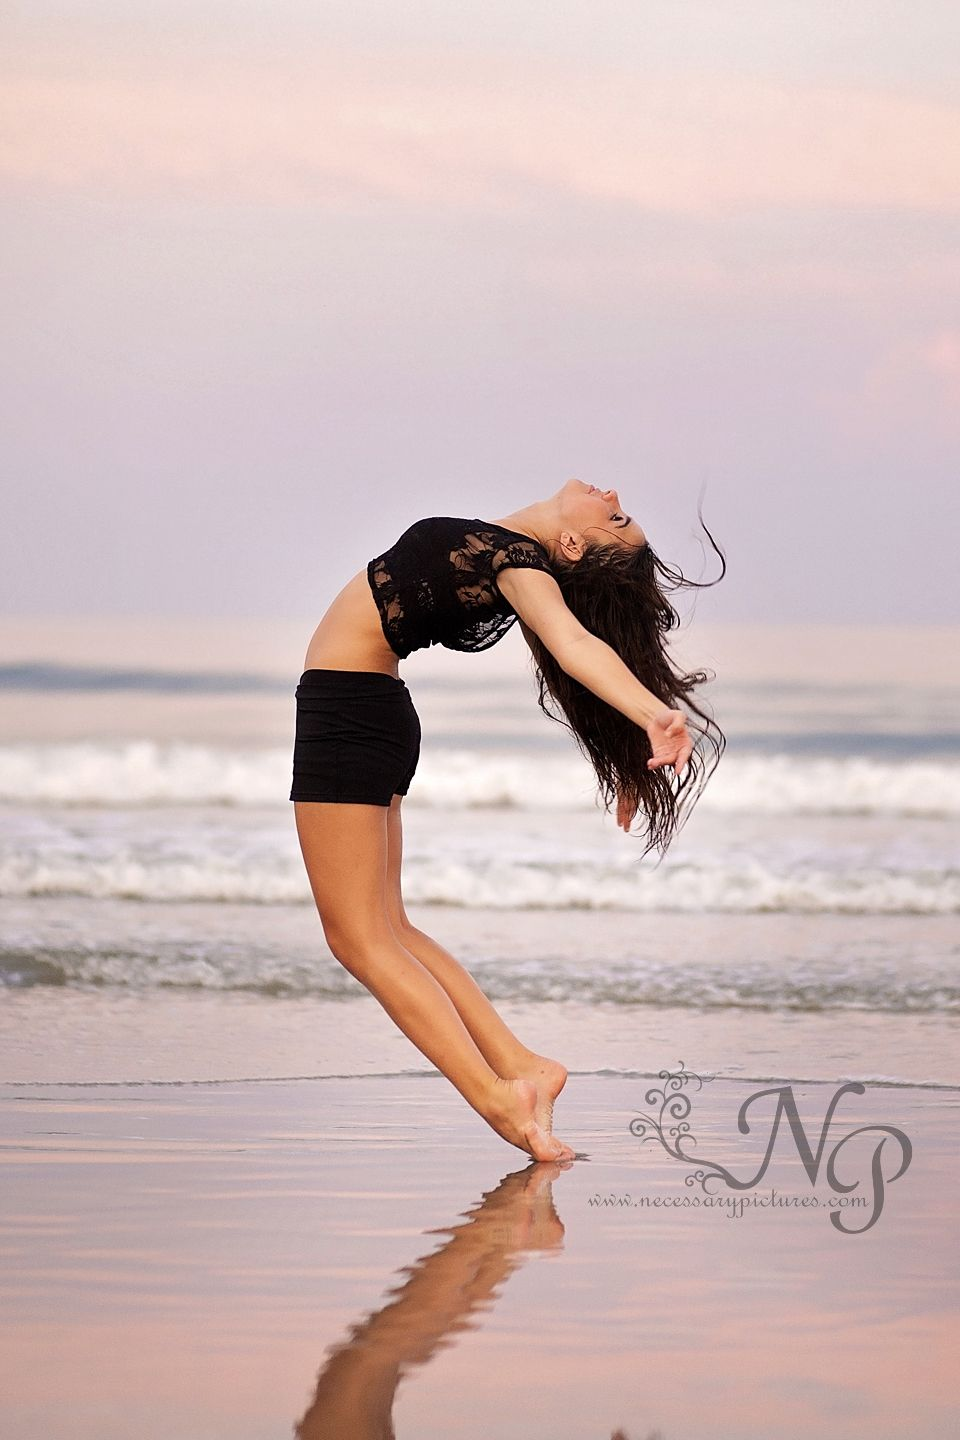 Beach Dance Photography Necessary Photography Dancers in 2019 960x1440